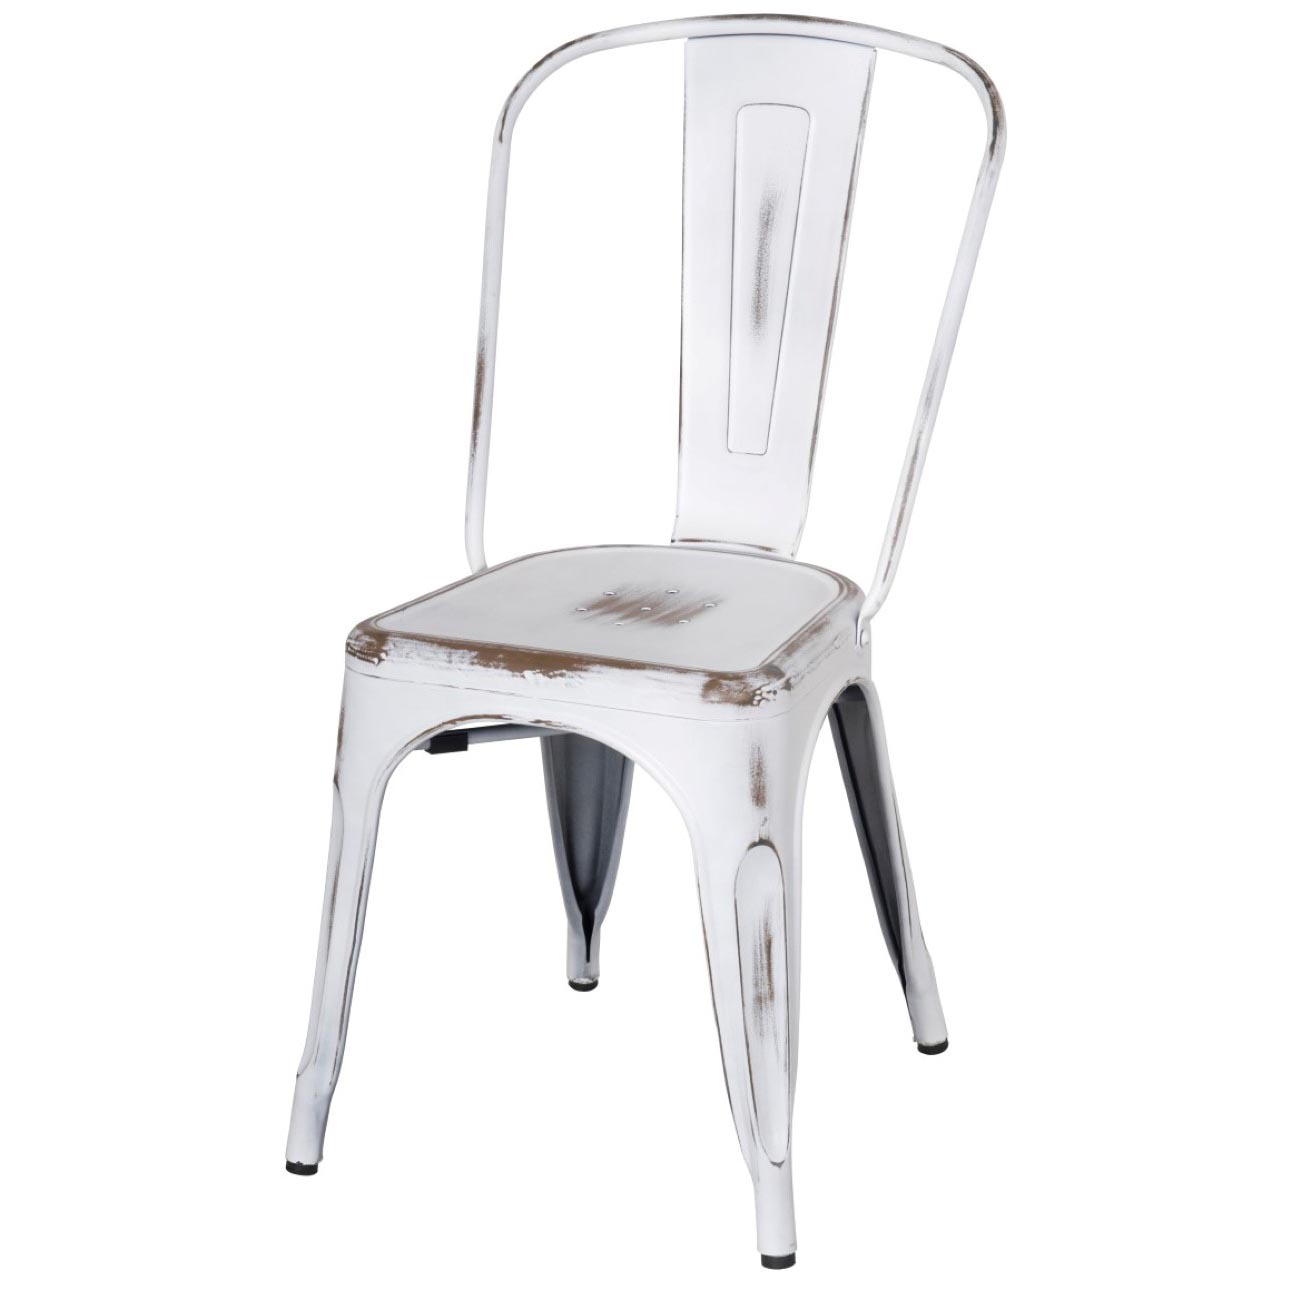 distressed metal furniture. Metropolis Metal Side Chair, Distressed White/938233-DW Distressed Metal Furniture